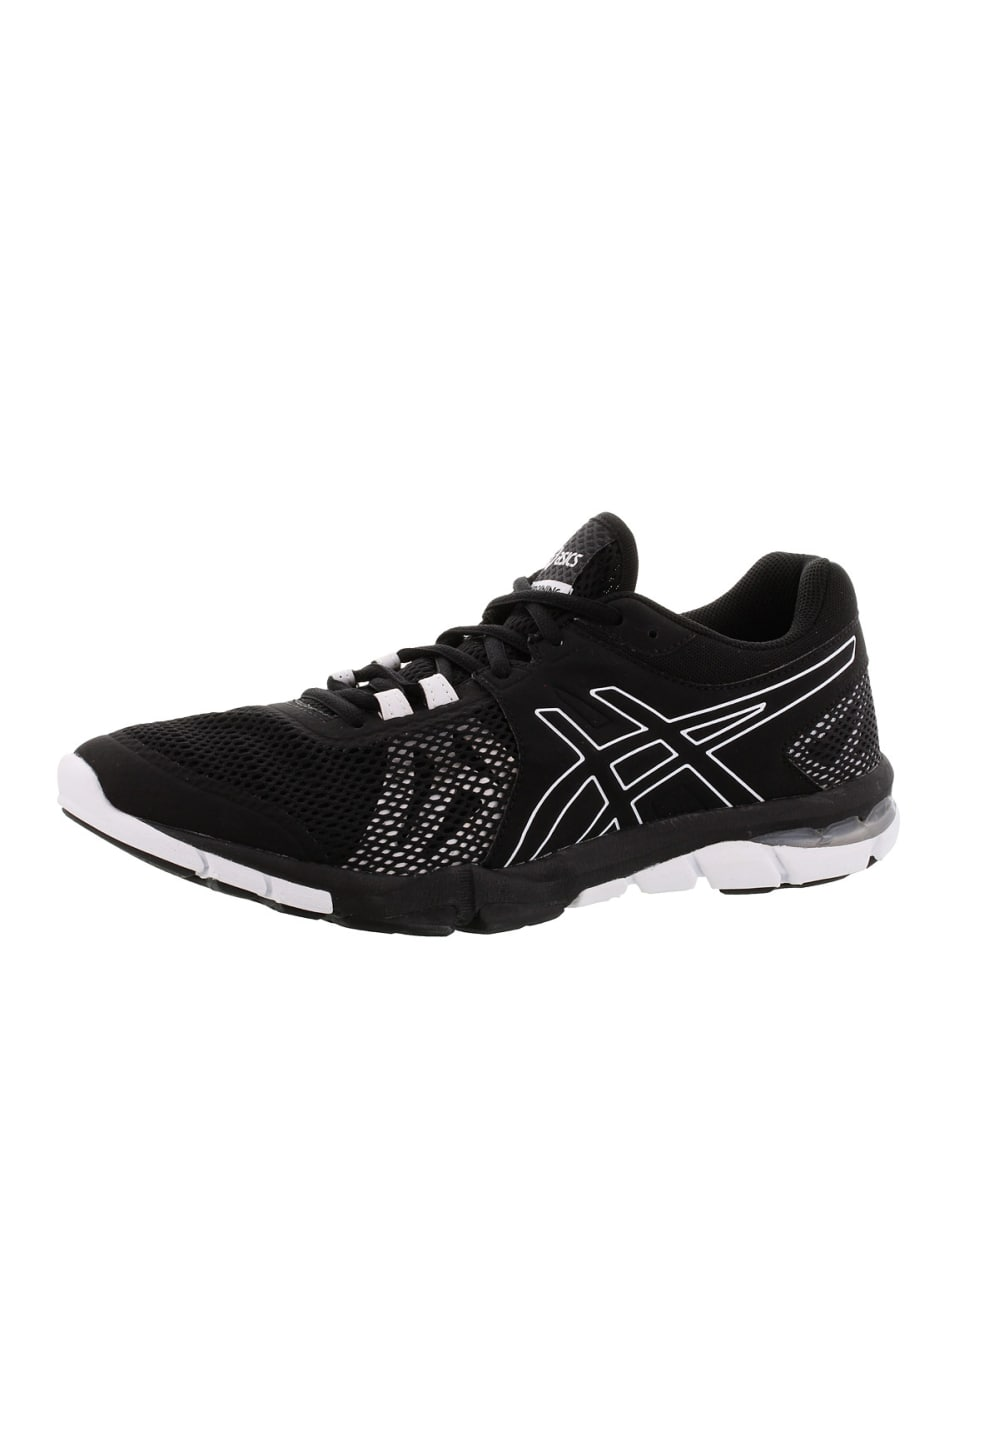 cb6468f4d ASICS GEL-Craze TR 4 - Fitness shoes for Women - Black | 21RUN